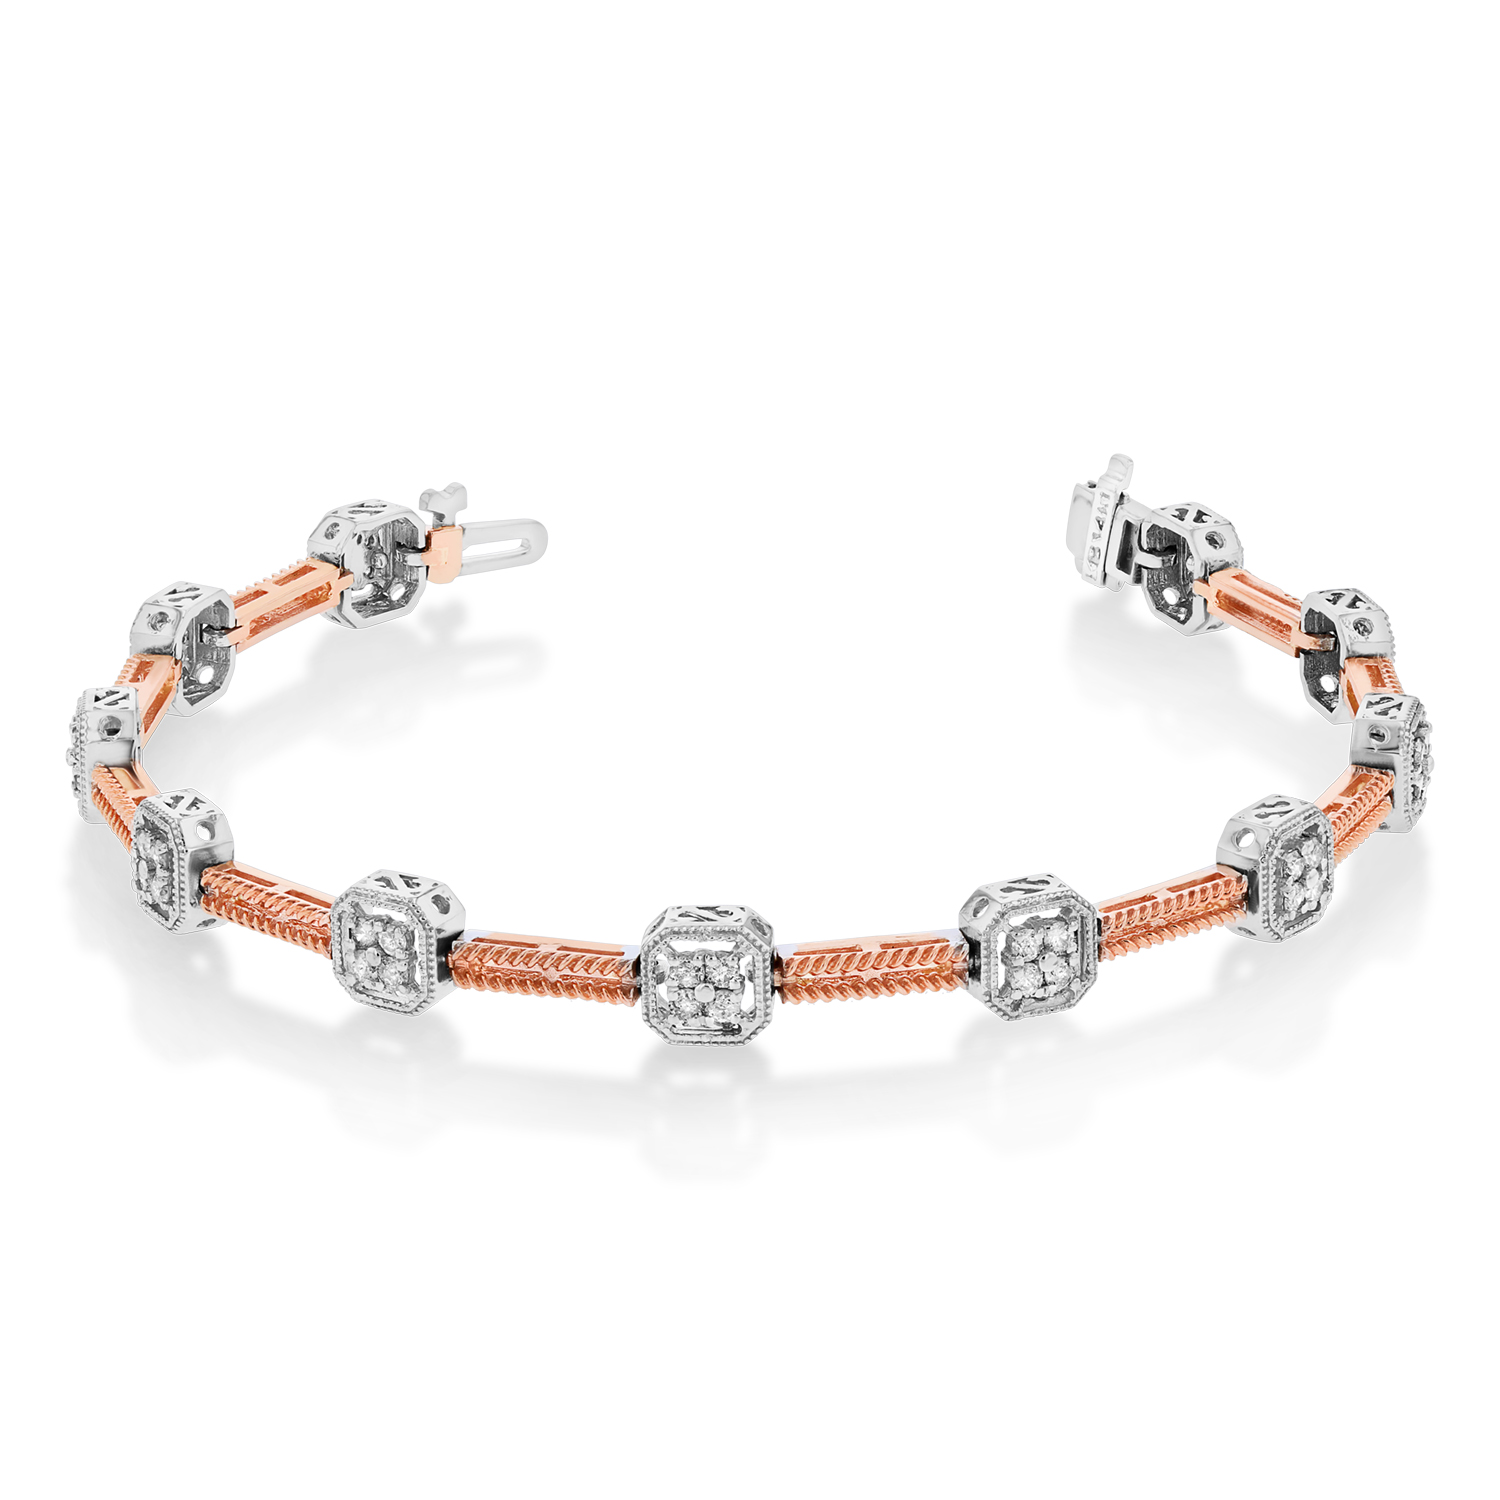 View 0.90ctw Diamond Bracelet in 14k TT Gold